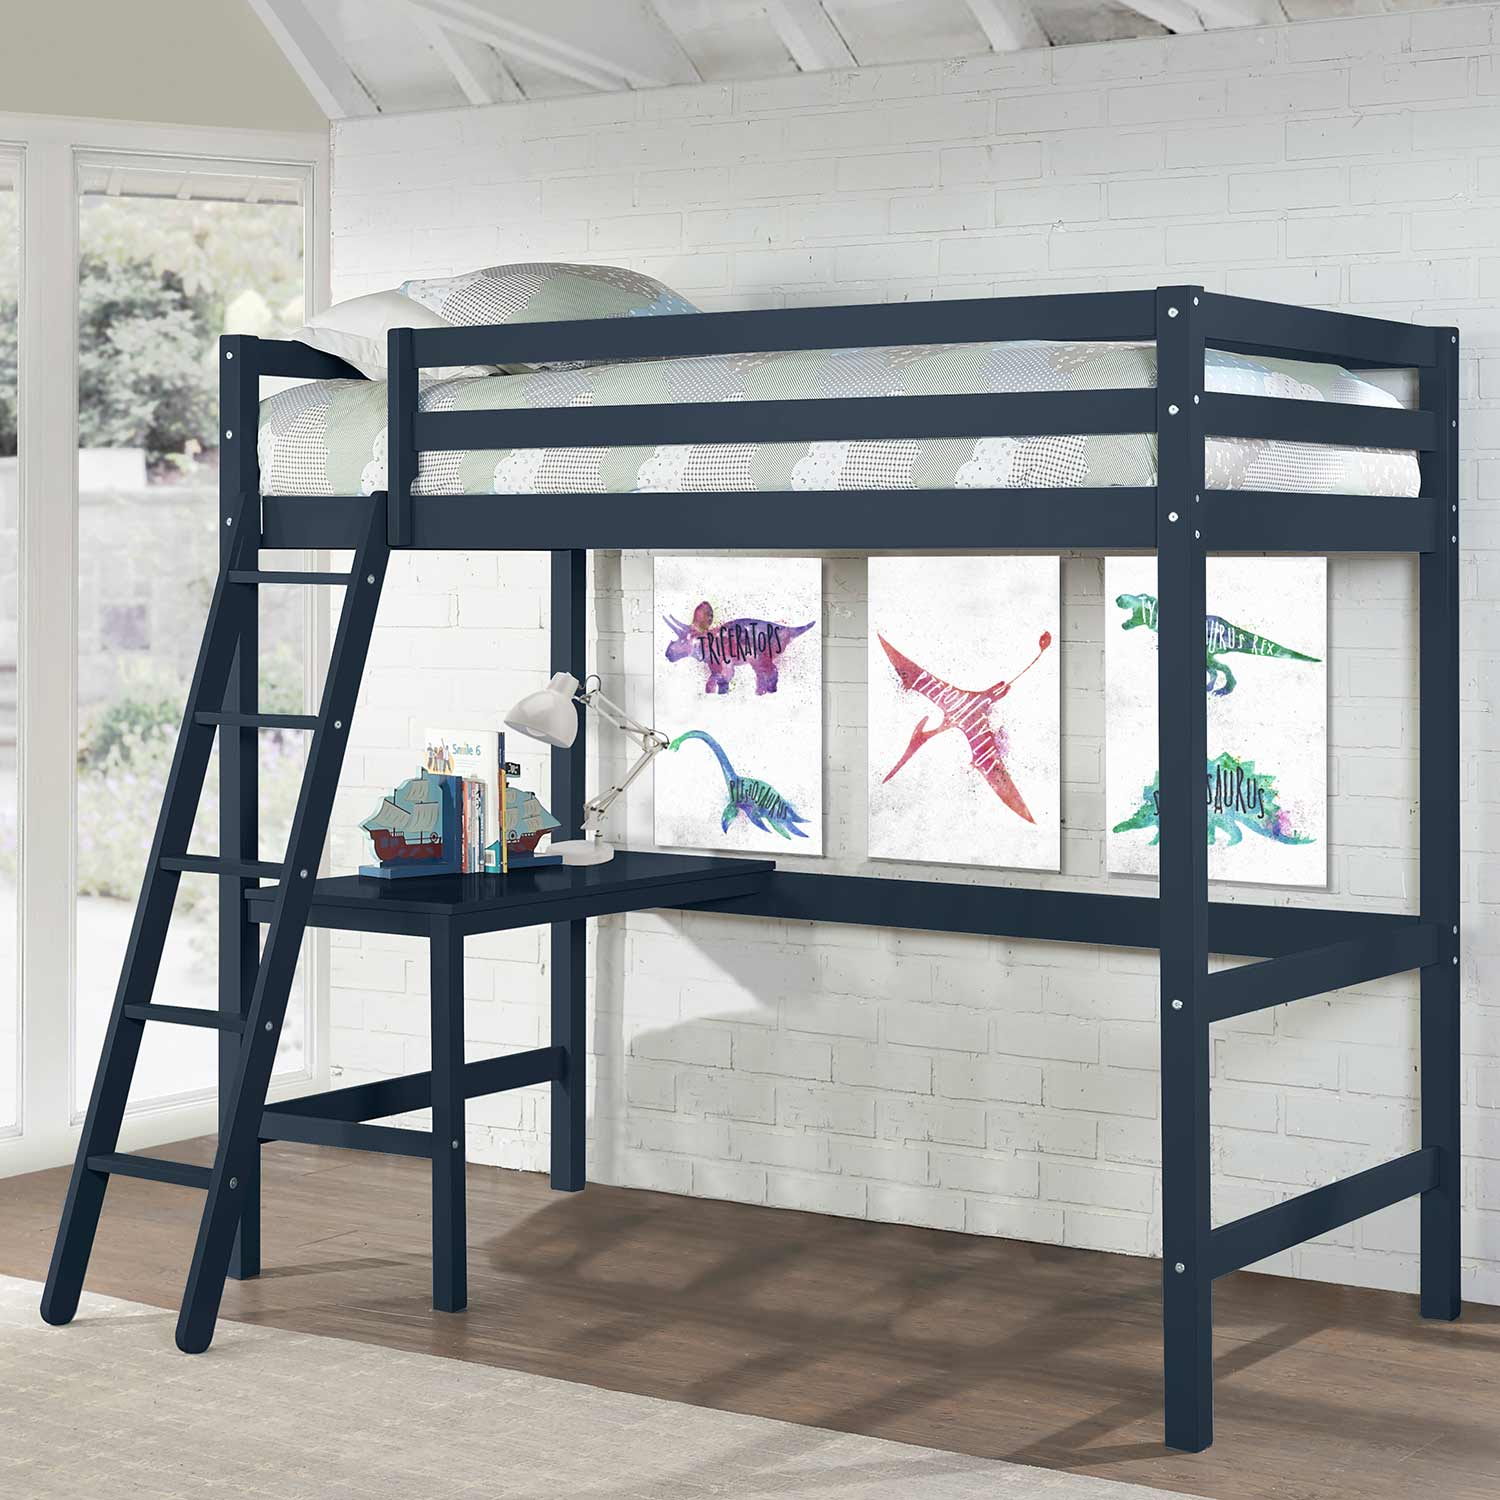 Hillsdale Caspian Twin Loft Bed - Navy